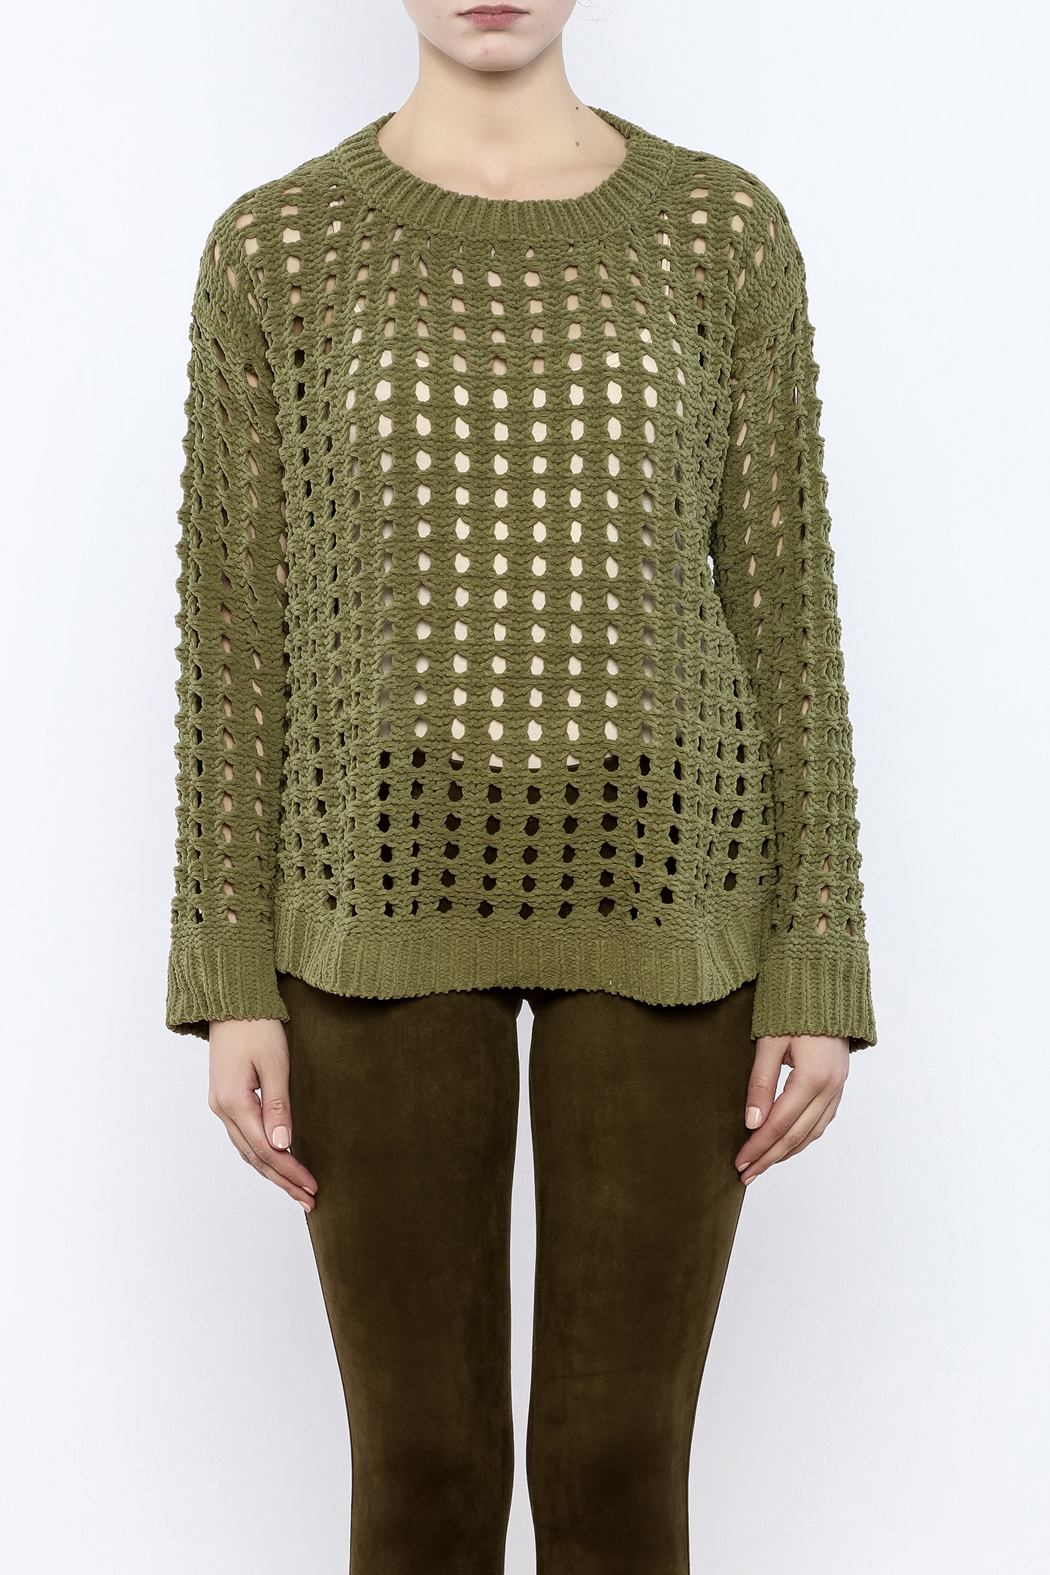 Ethereal Loose Knit Sweater from New York City by Dor L'Dor ...